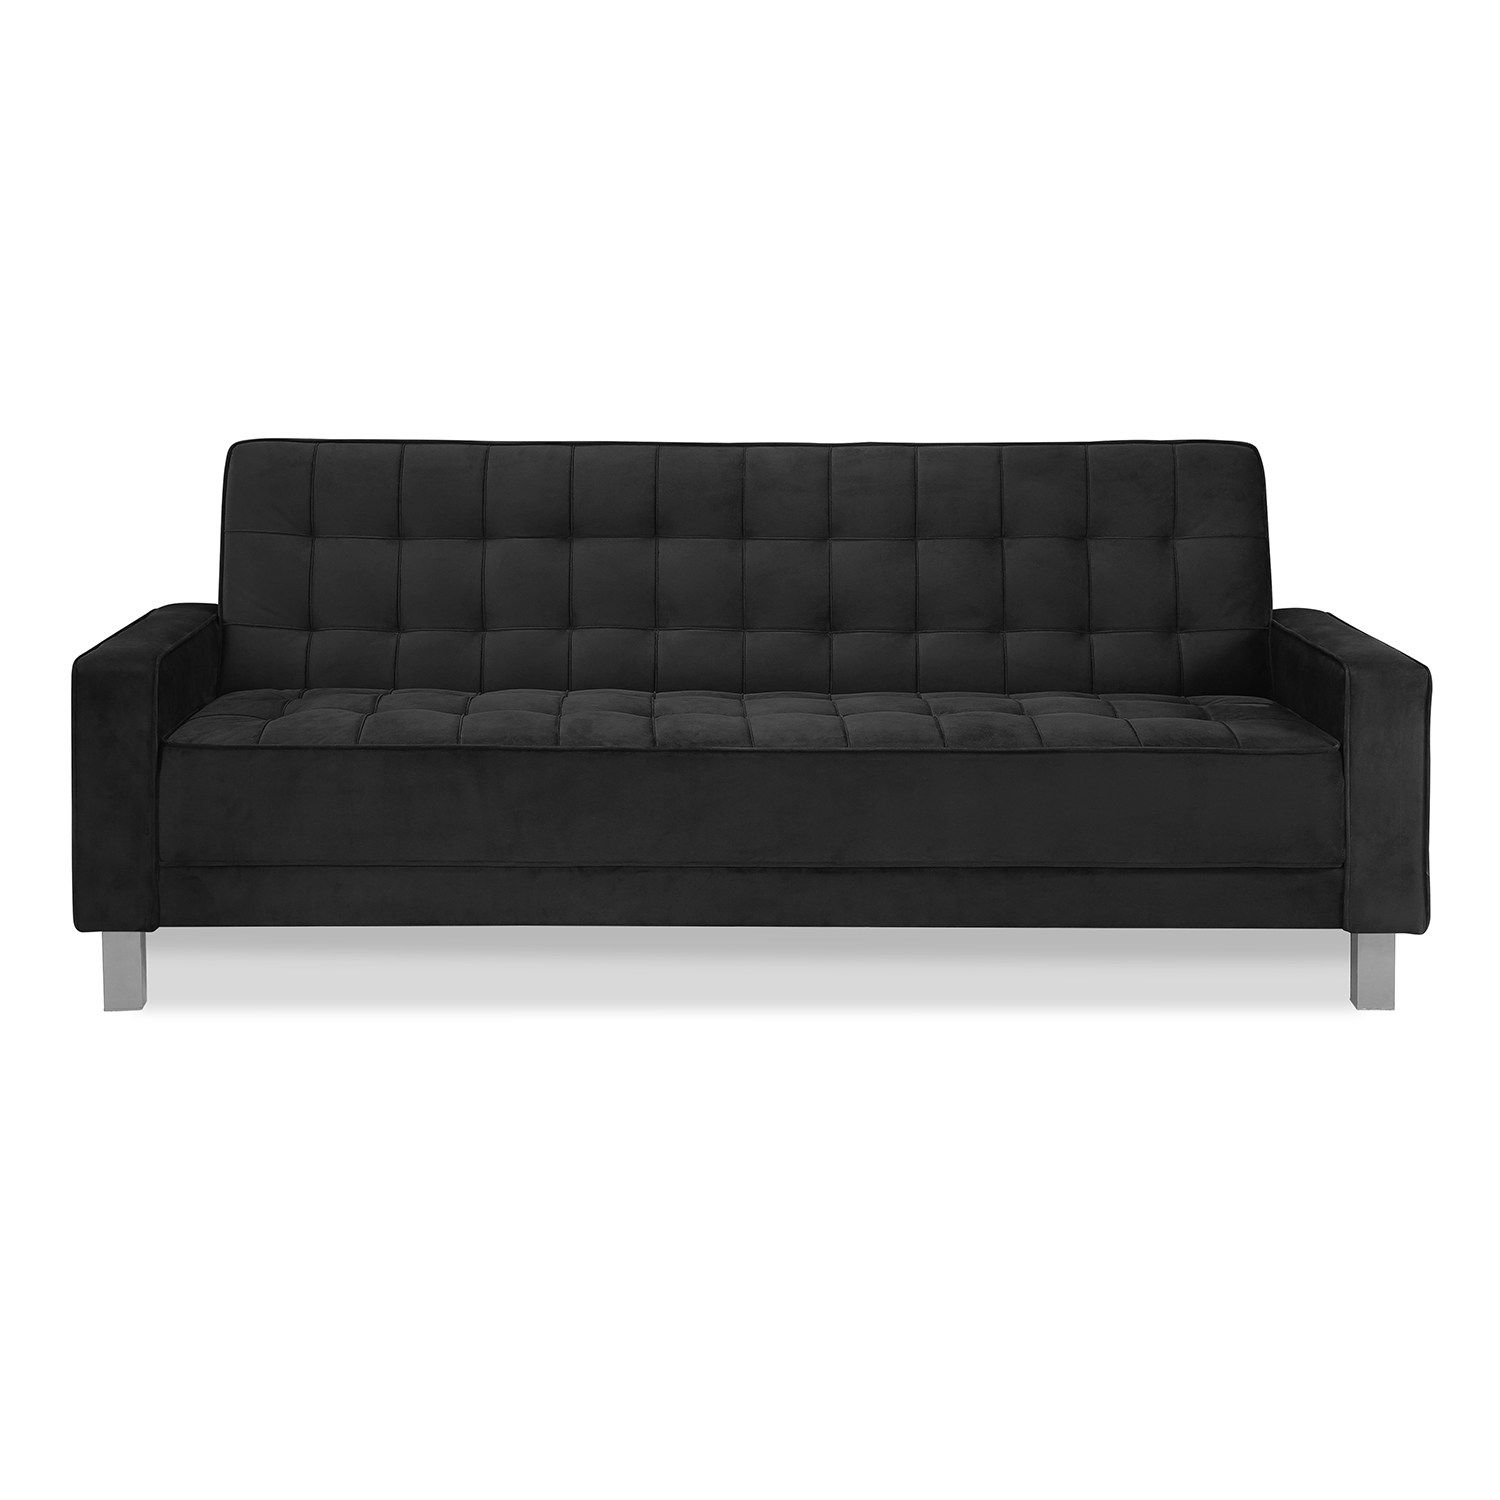 Fine Lifestyle Solutions Serta Montrose Sofa In 2019 Bathroom Ibusinesslaw Wood Chair Design Ideas Ibusinesslaworg